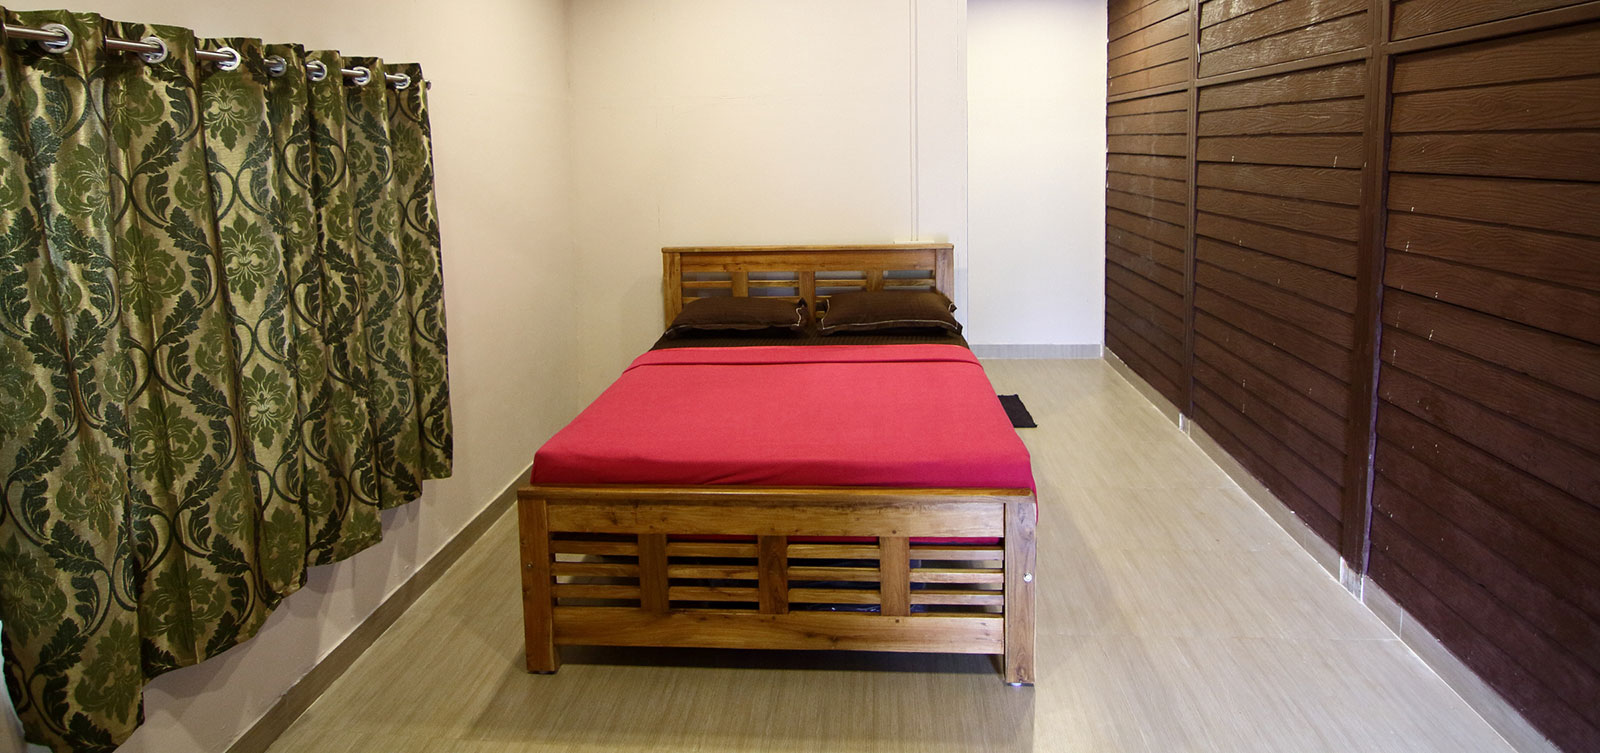 coorg-rooms